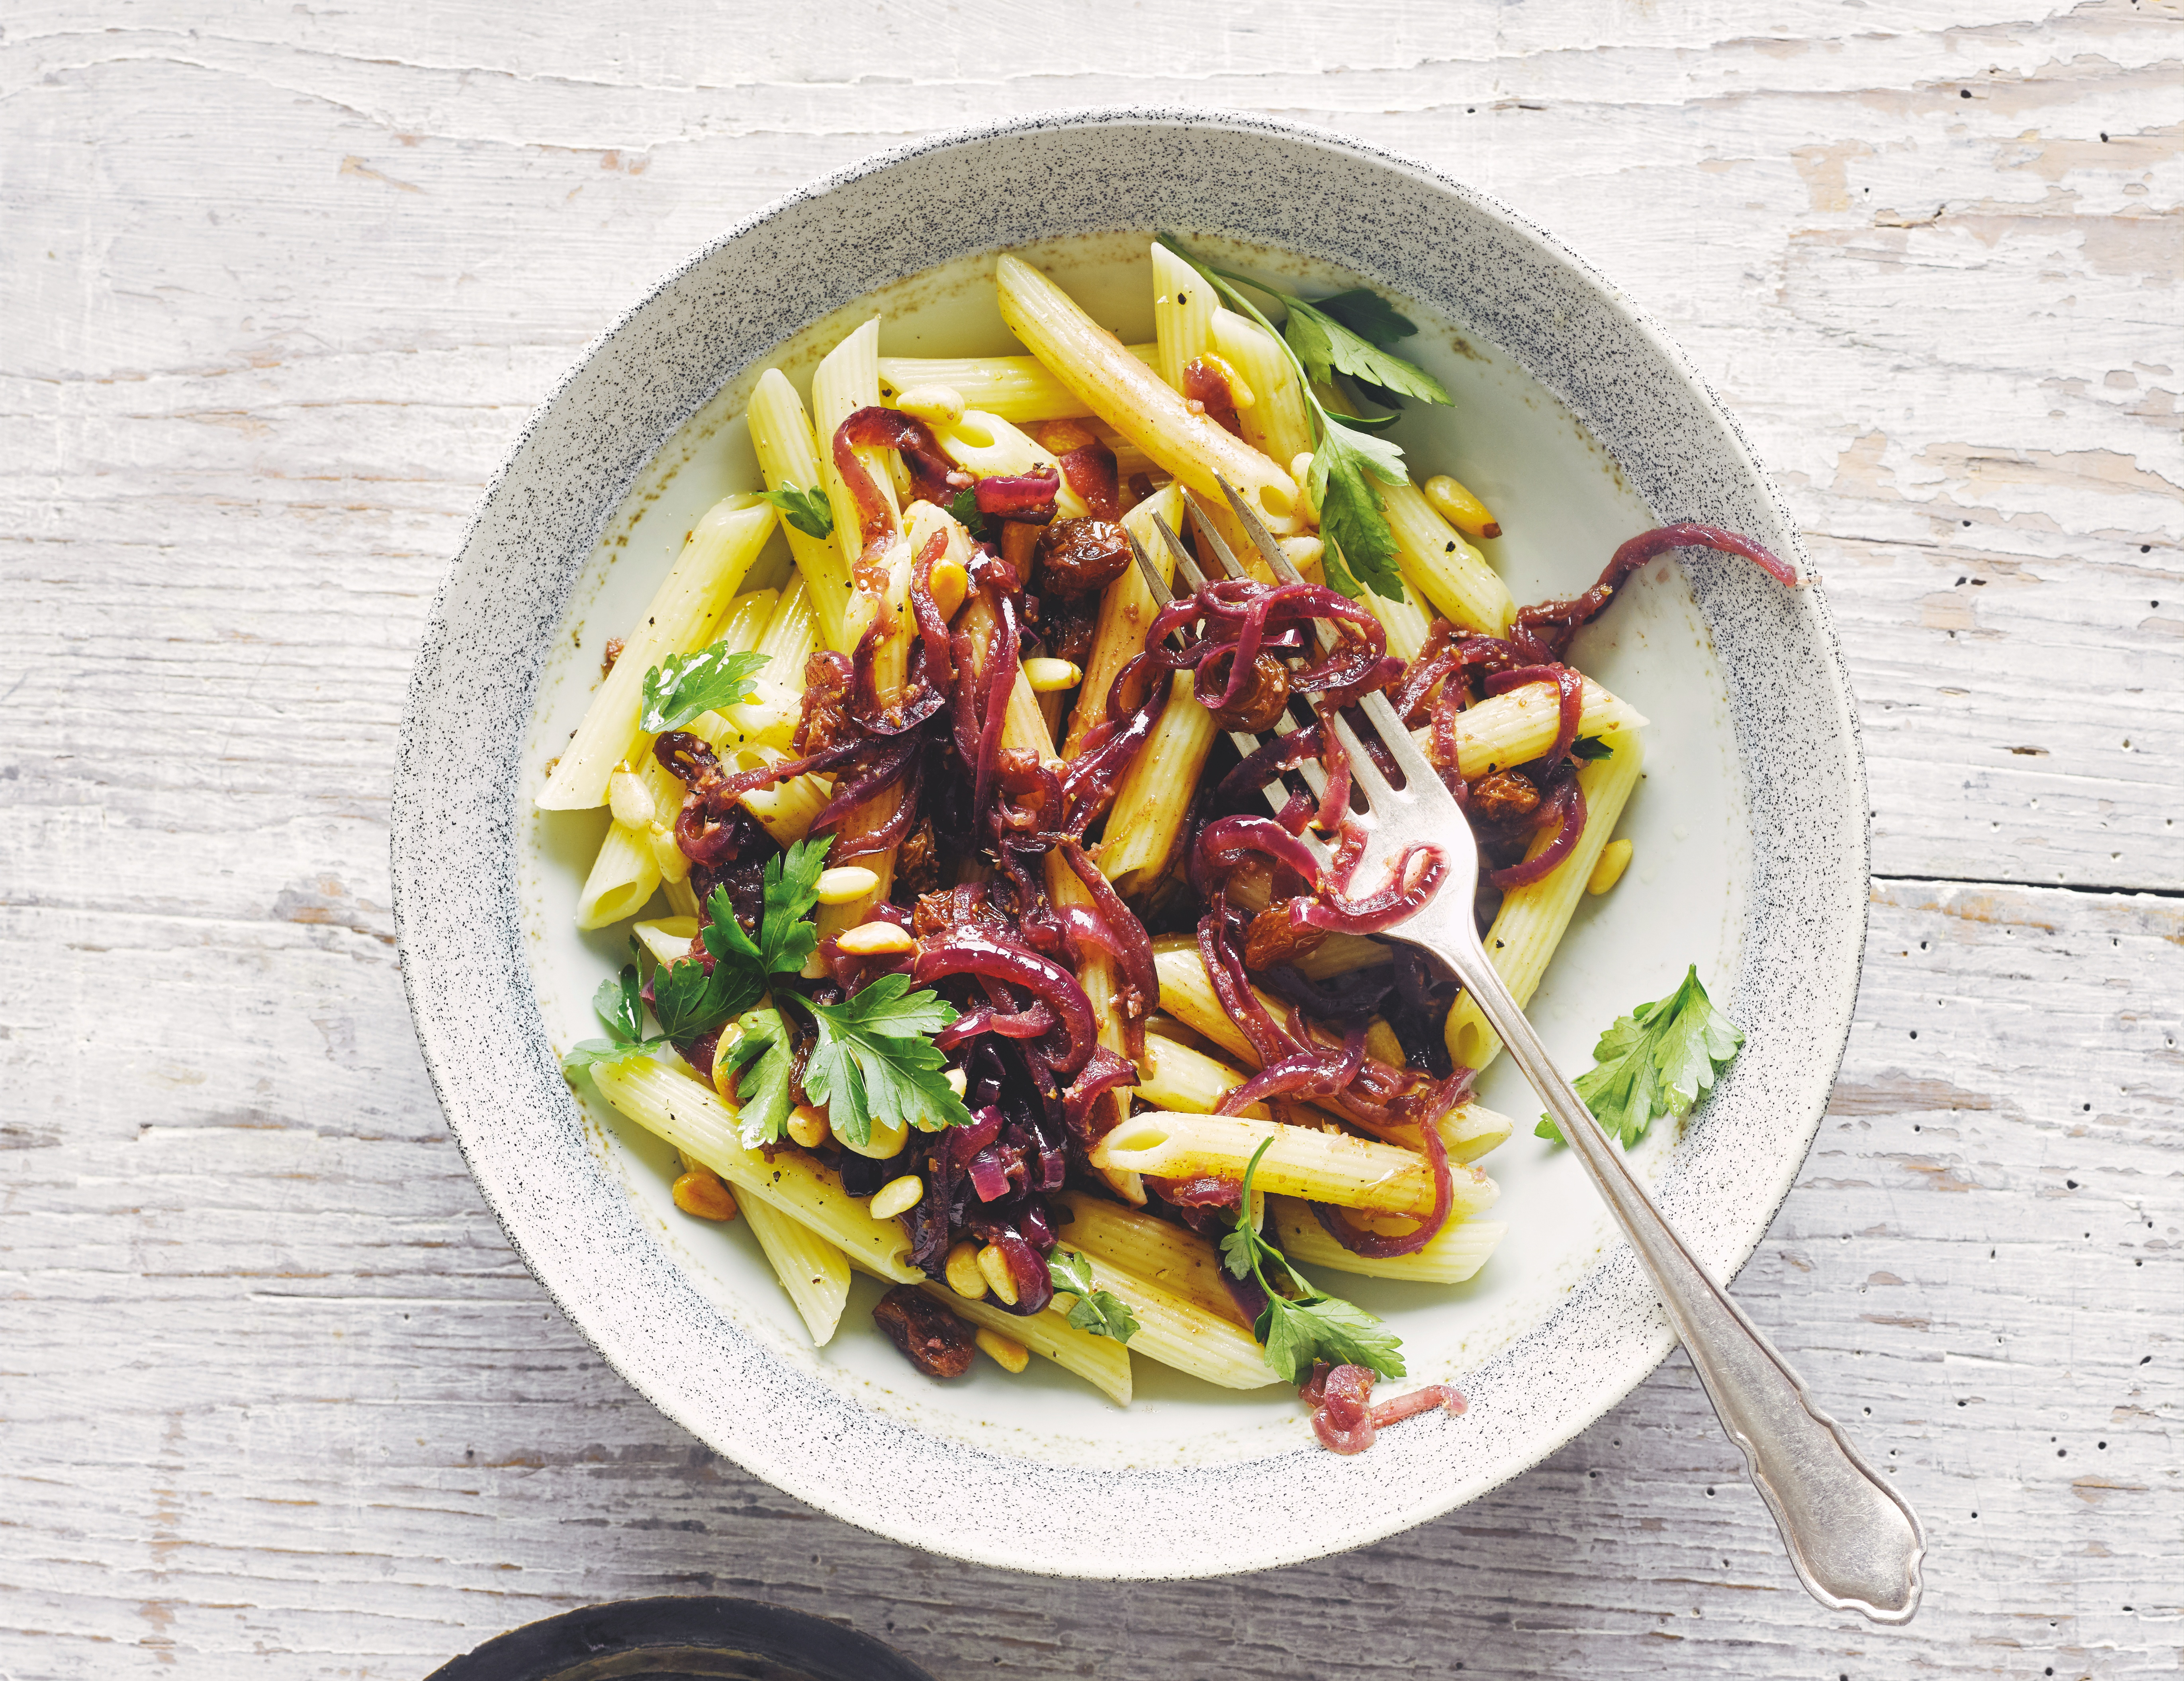 Penne with Spiced Caramelized Onions